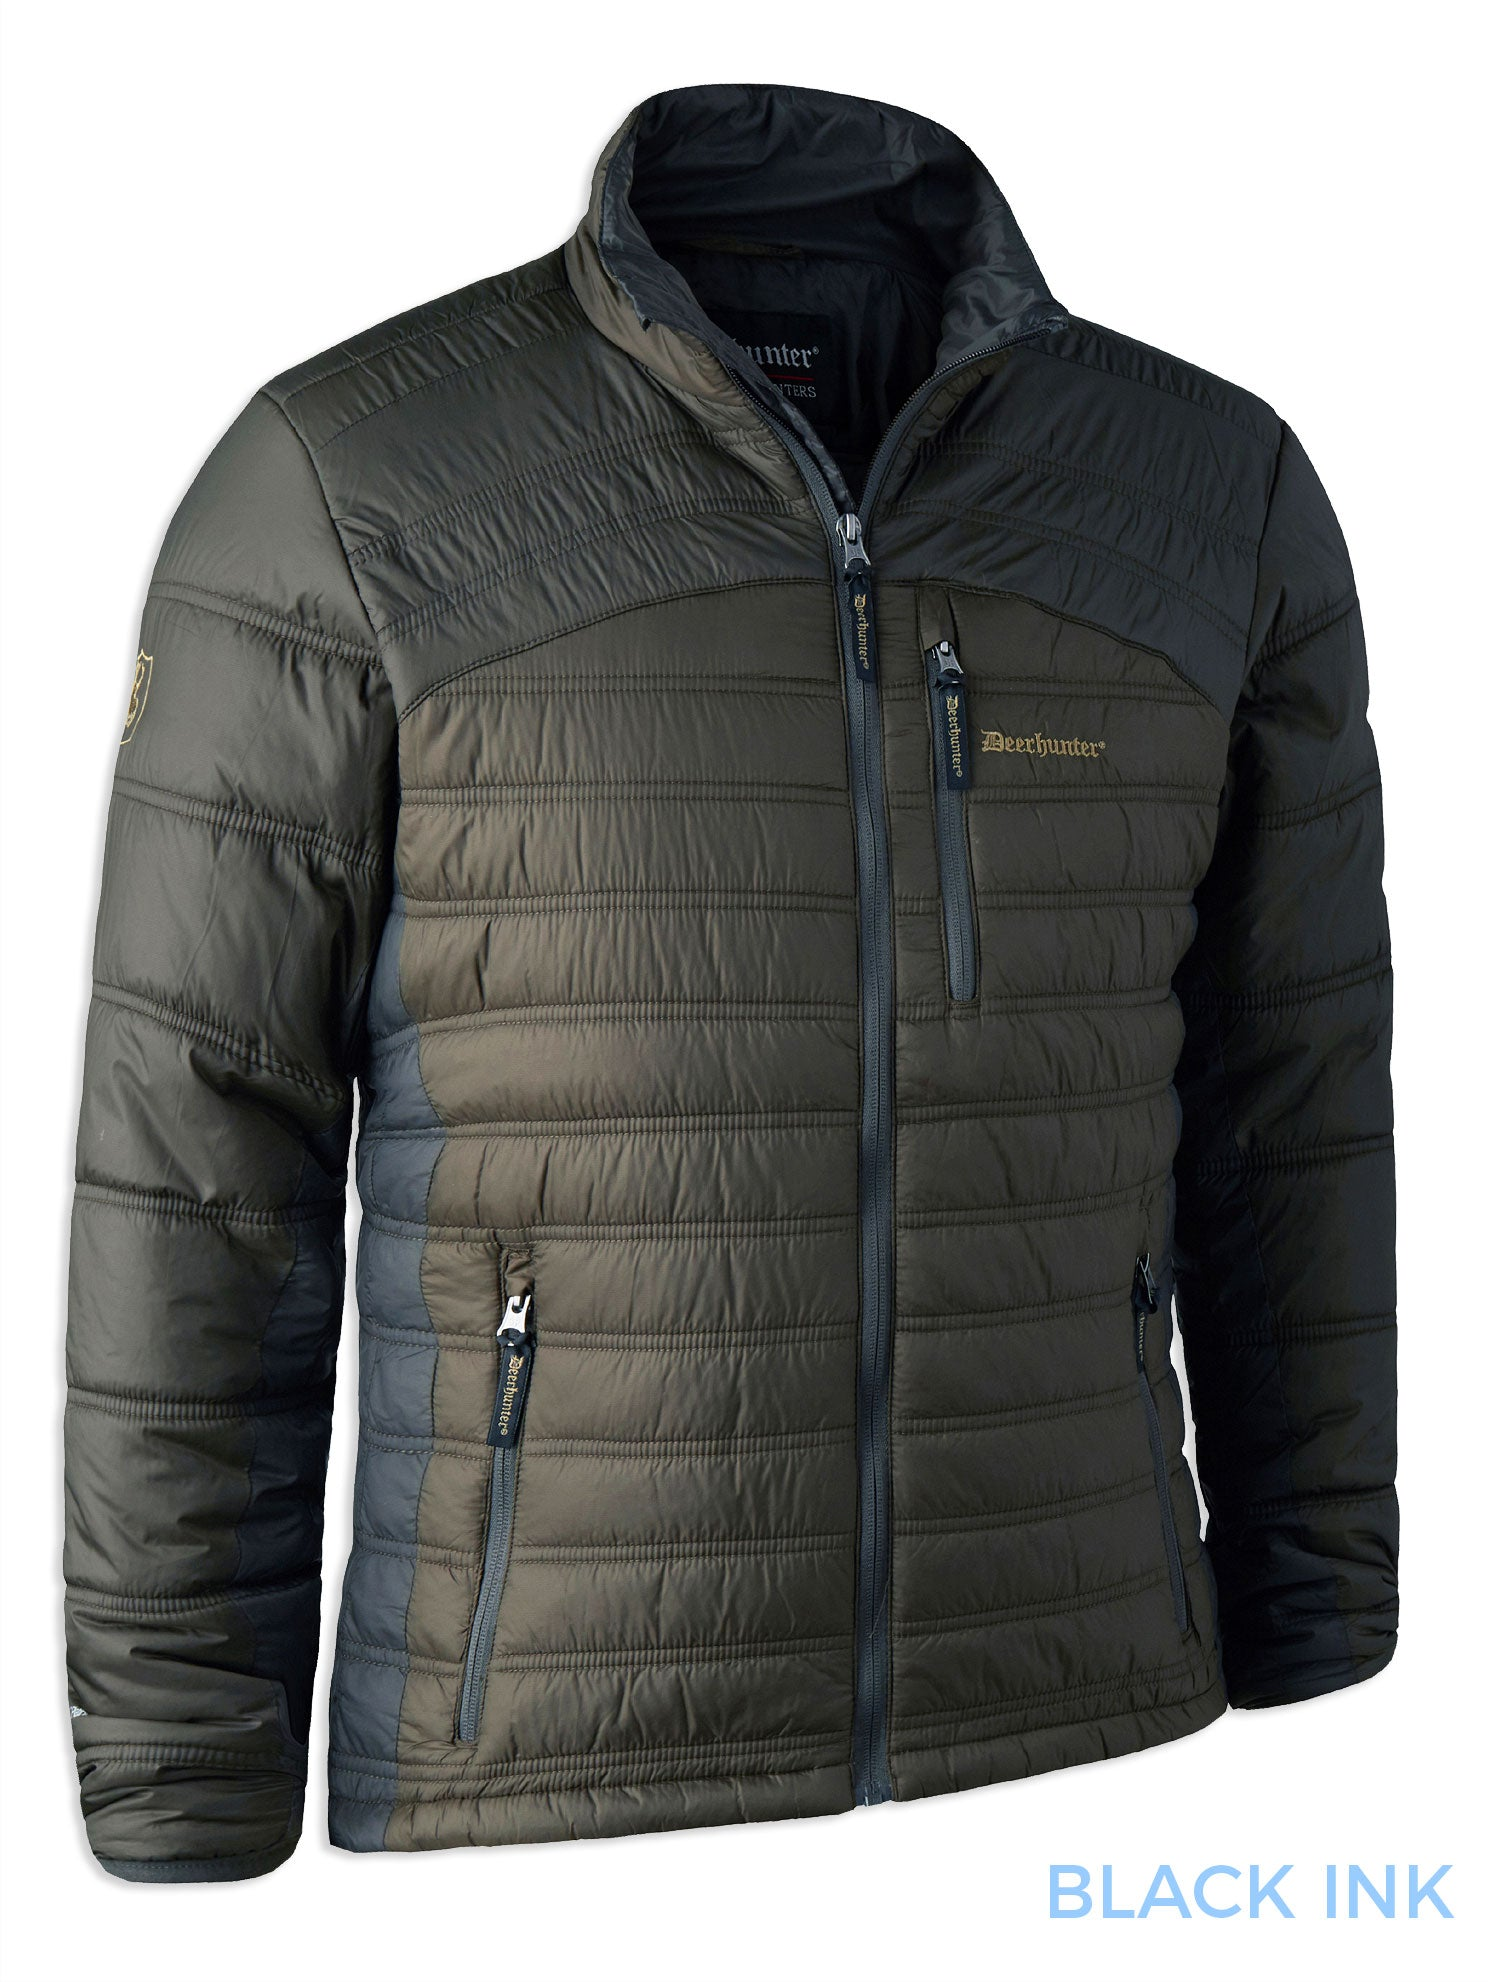 Verdun Quilted jacket with thinsulate padding Black Ink (three colour combination, Green/Brown/Black)